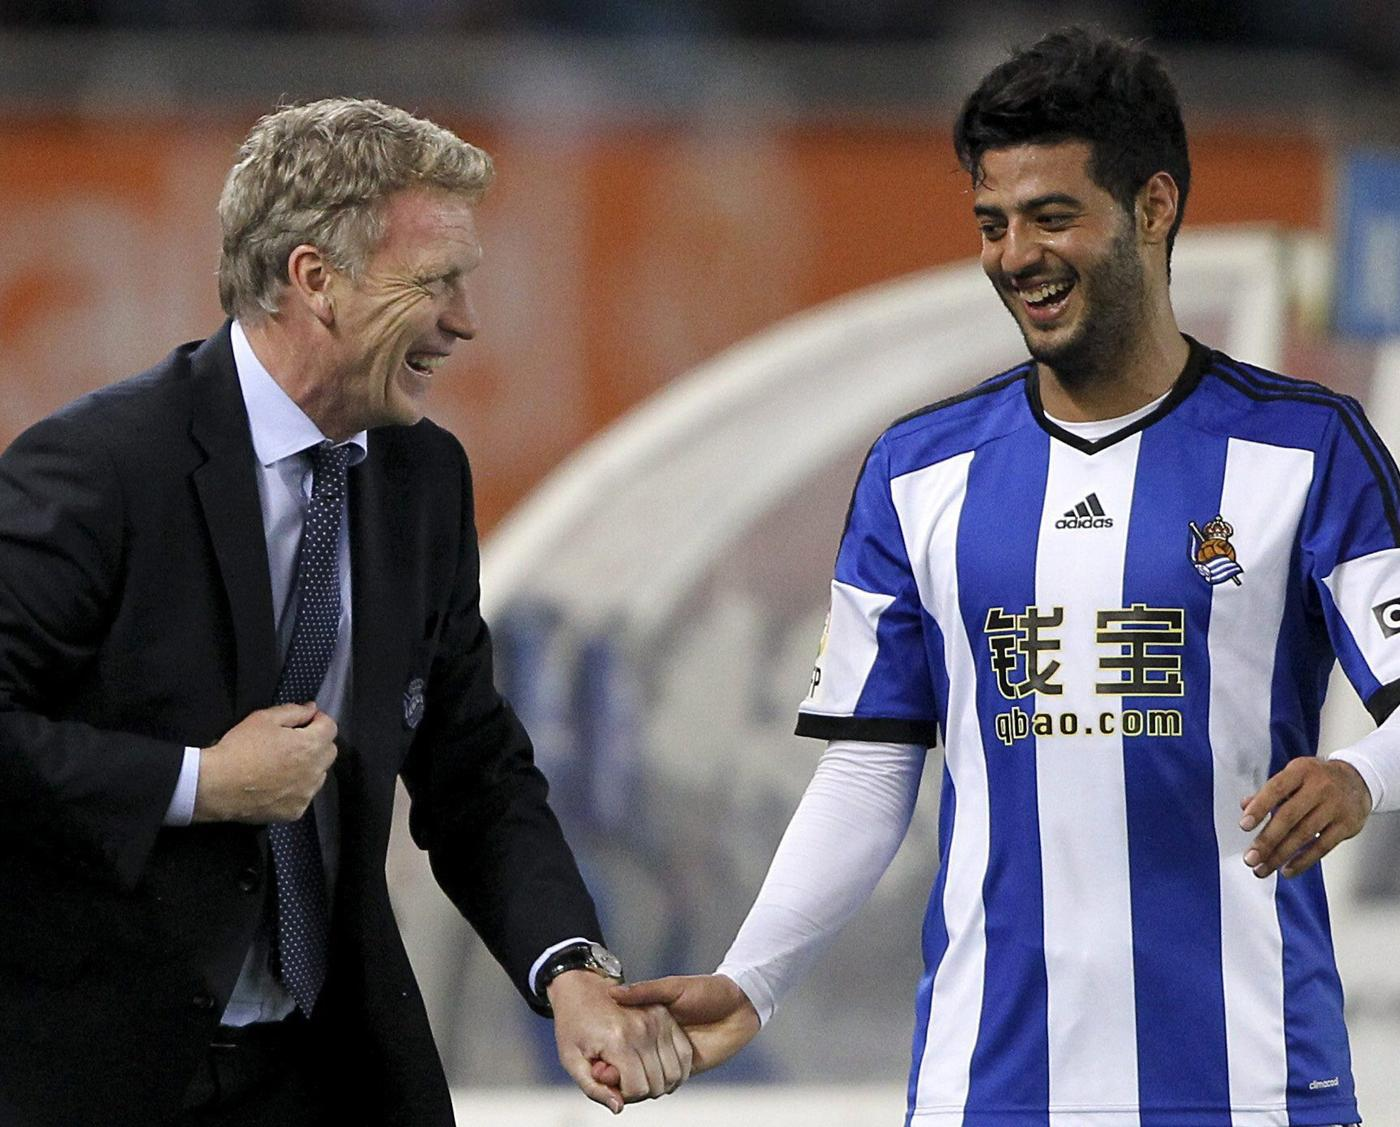 Former Arsenal winger Carlos Vela's superb free-kick for Real Sociedad against Levante has shades of an Andrea Pirlo special about it